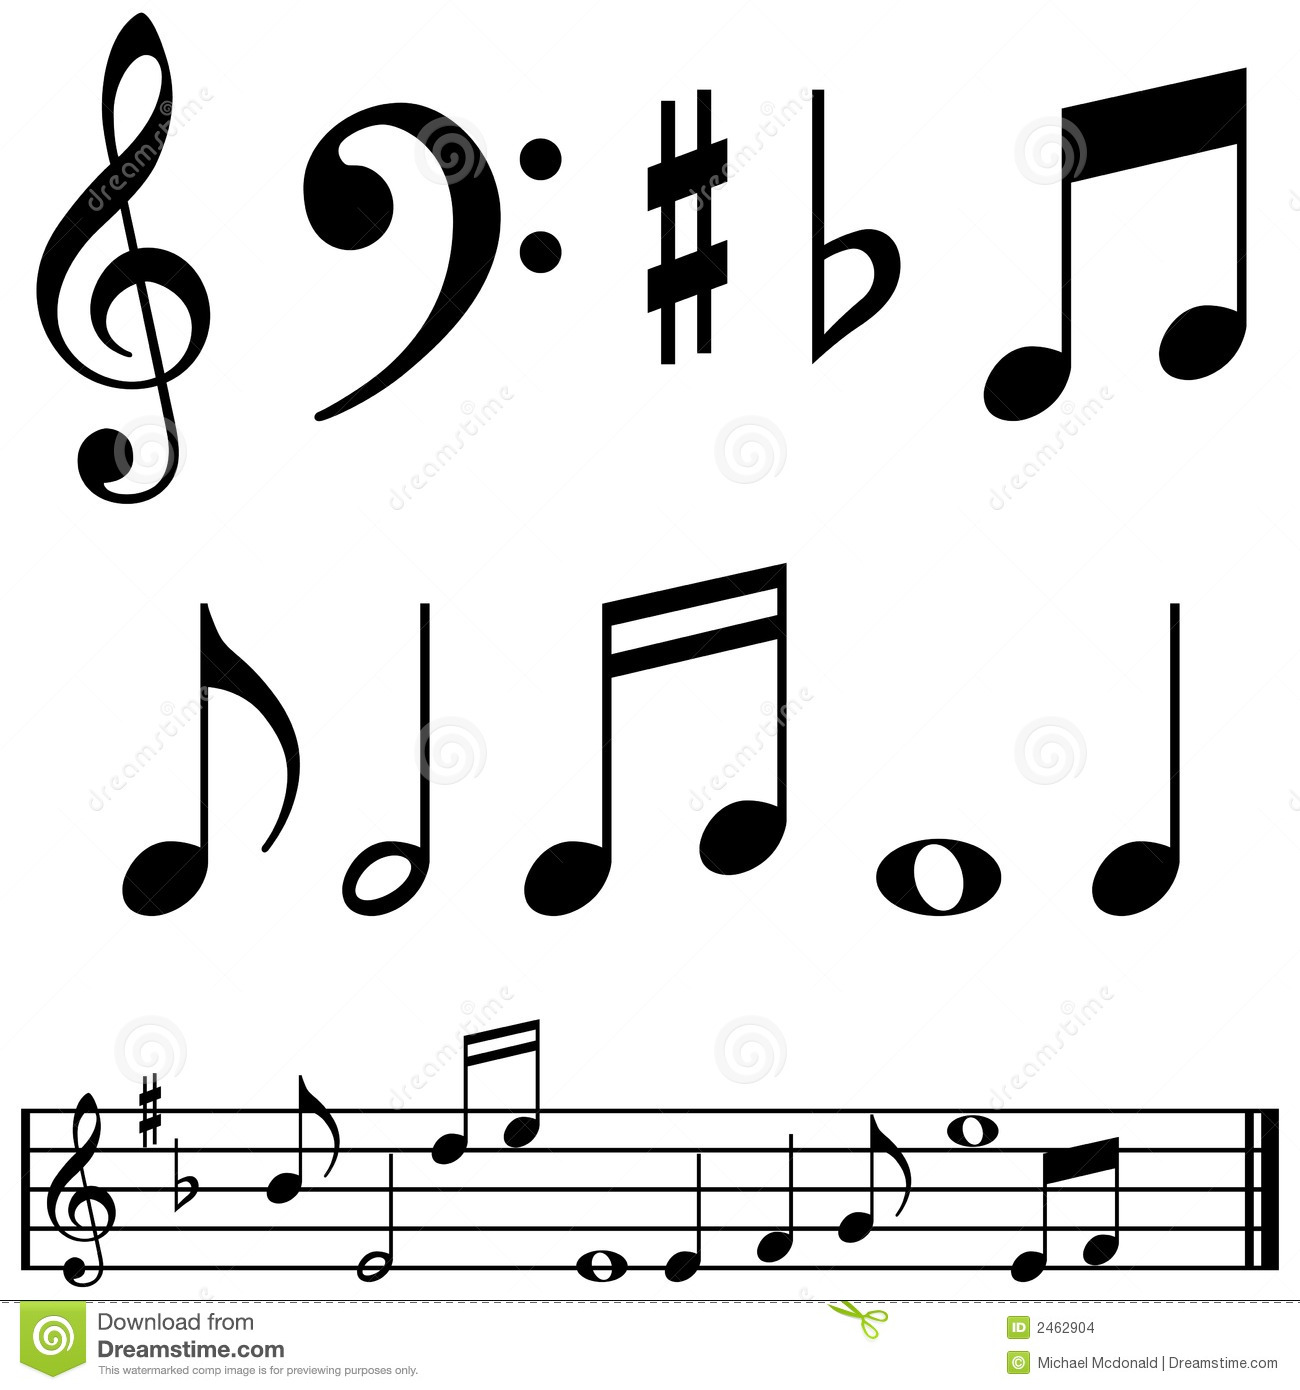 Music notes and symbols stock vector illustration of score 2462904 music notes and symbols biocorpaavc Images